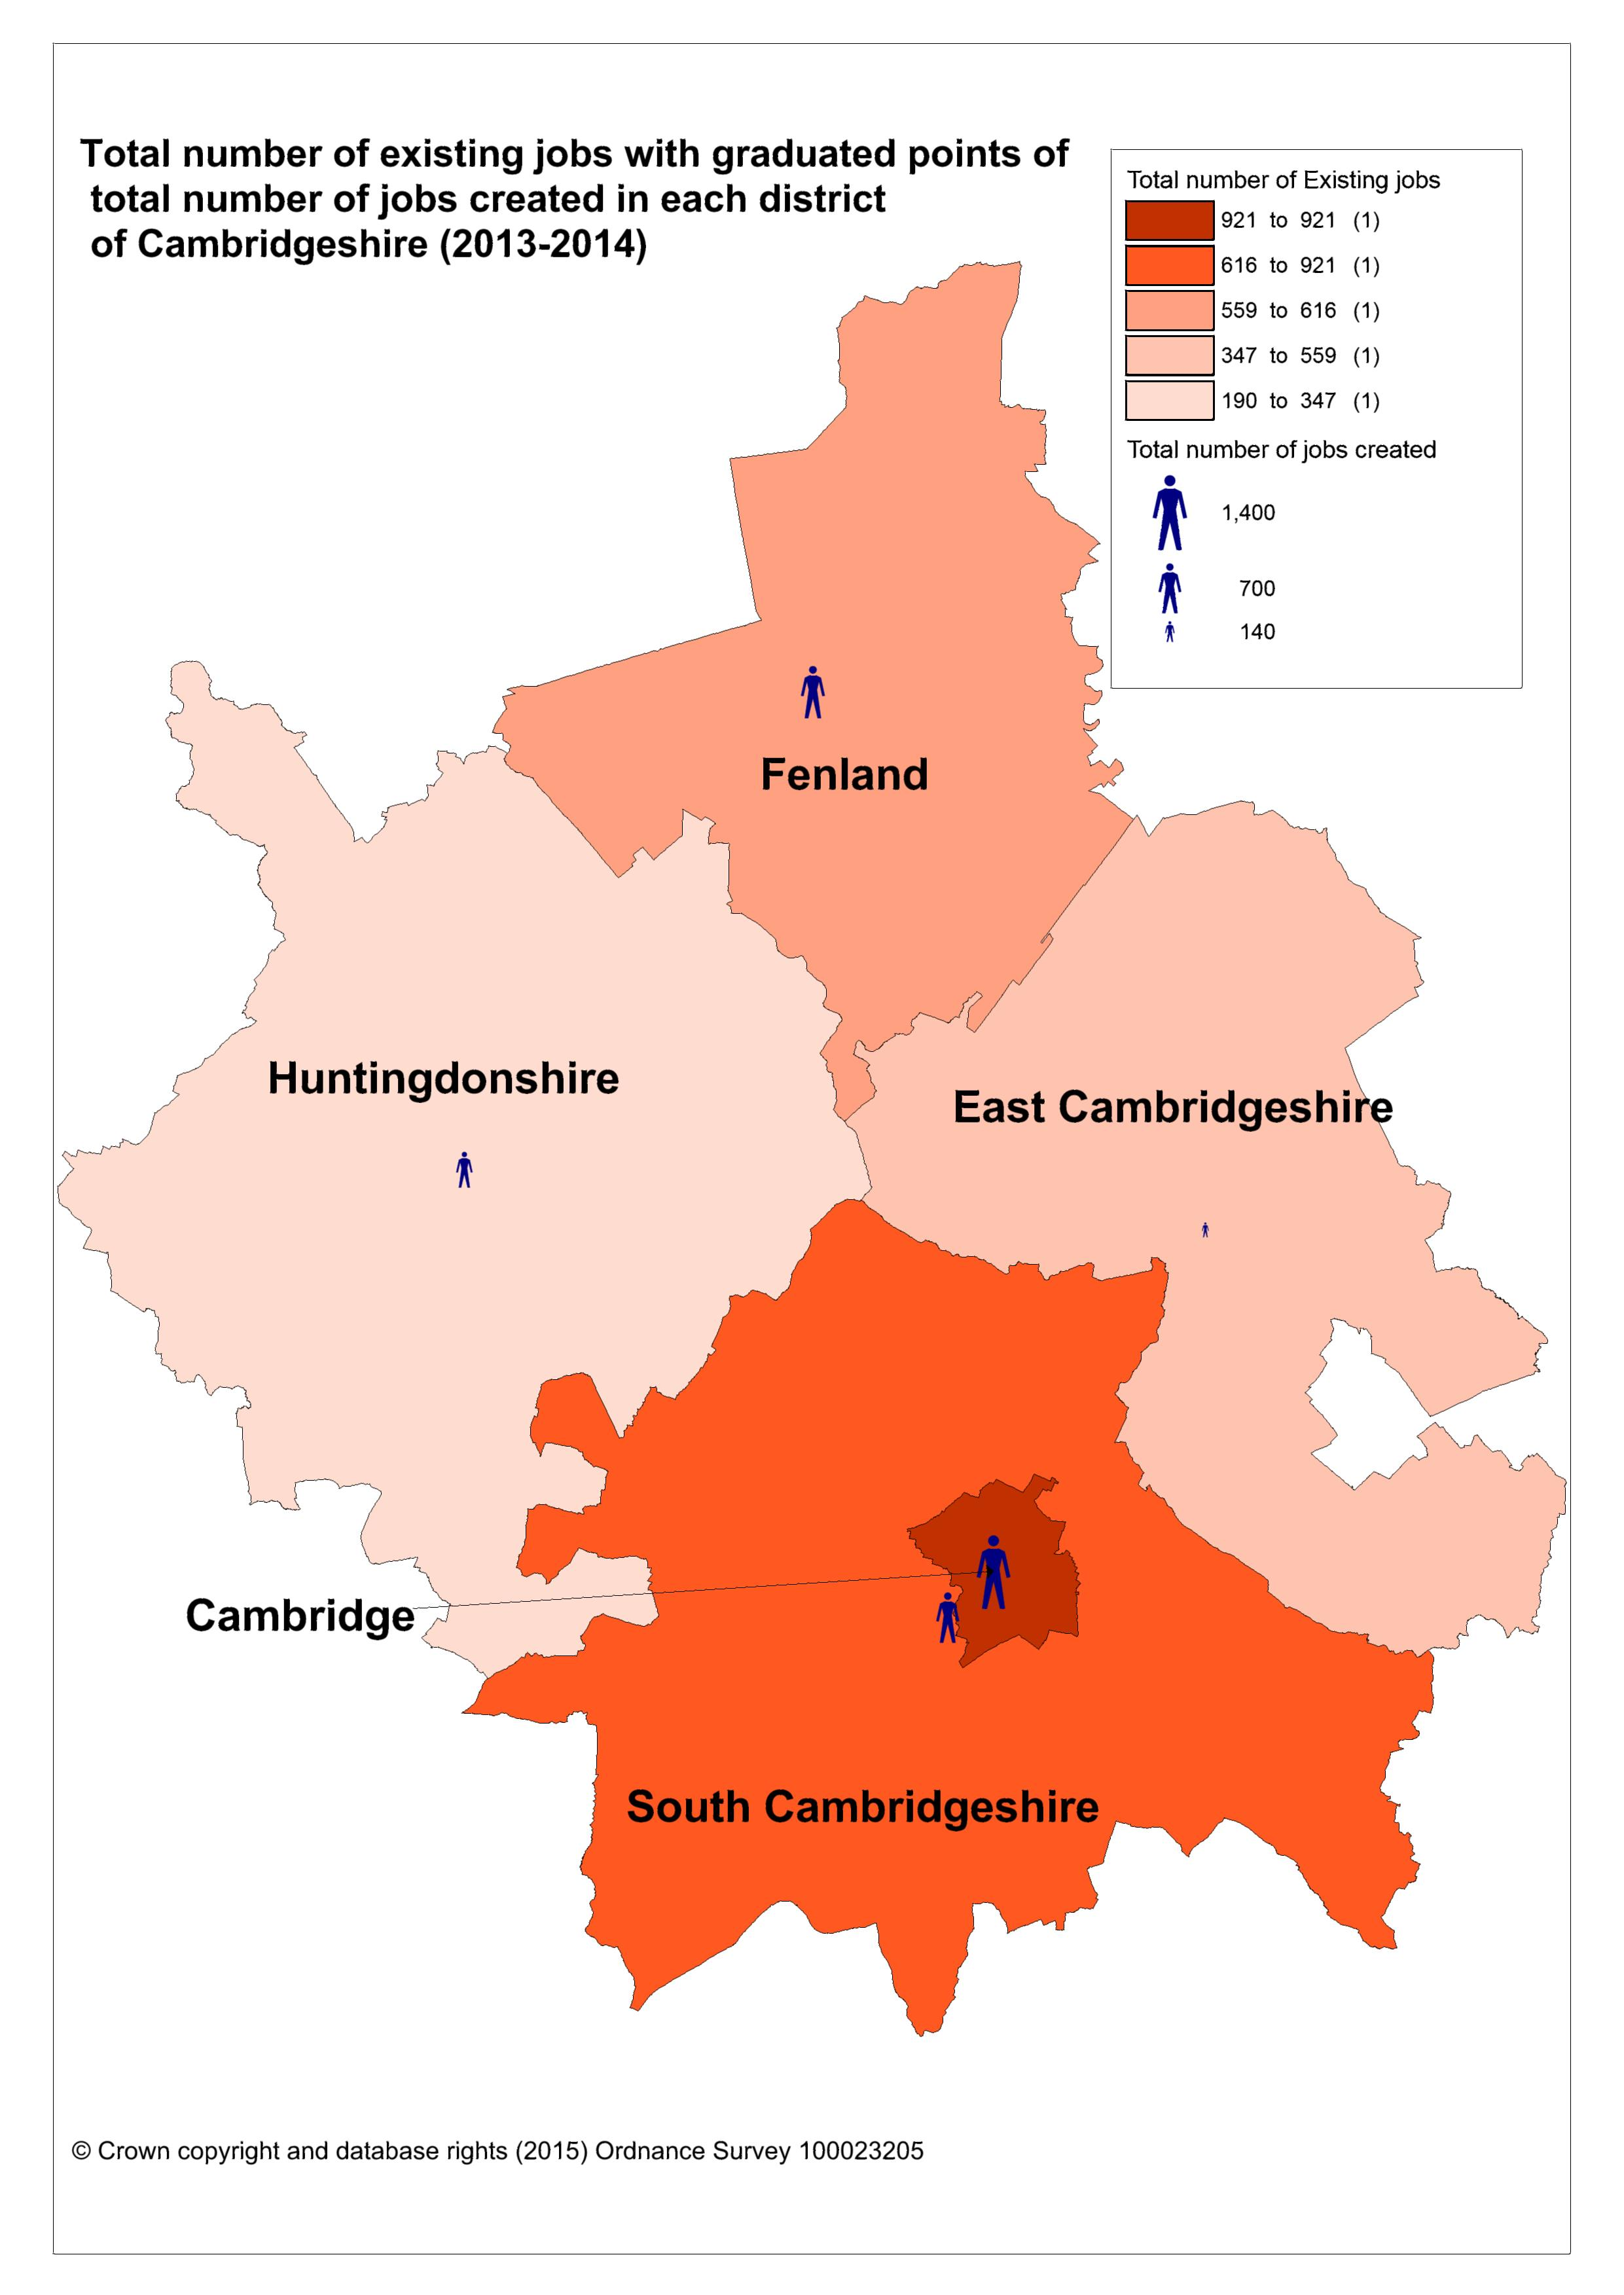 Where are new jobs being created and where are the growth areas within Cambridgeshire?